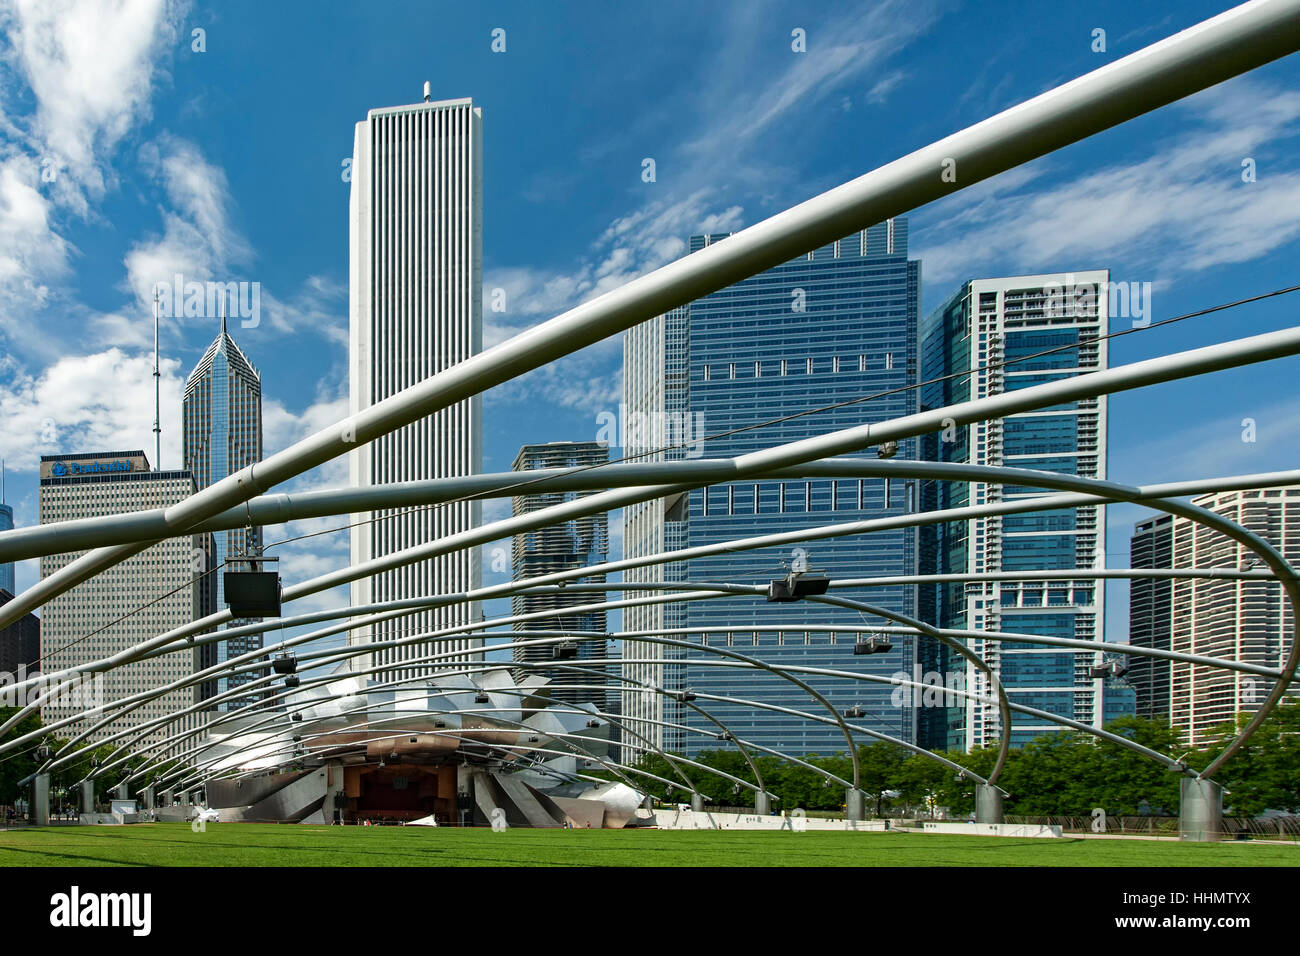 Millennium Park Amphitheatre and bandshell (Jay Pritzker Pavilion; Frank Gehry, architect) and skyline, Chicago, - Stock Image